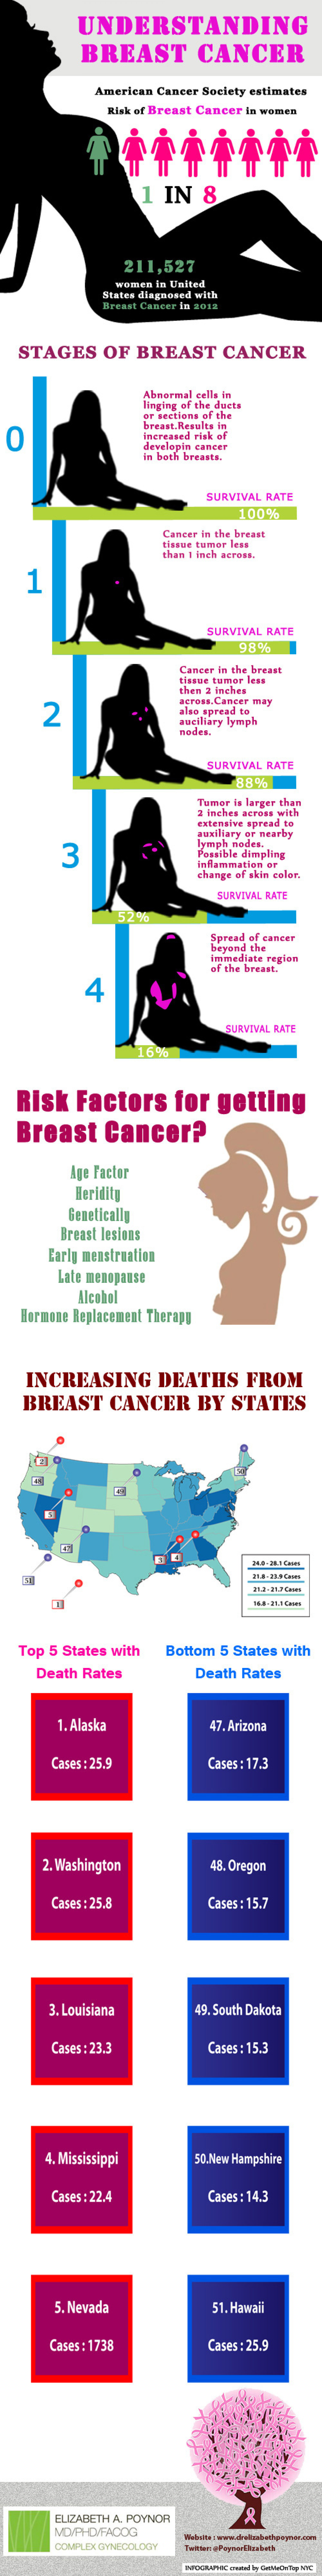 Understanding Breast cancer Infographic